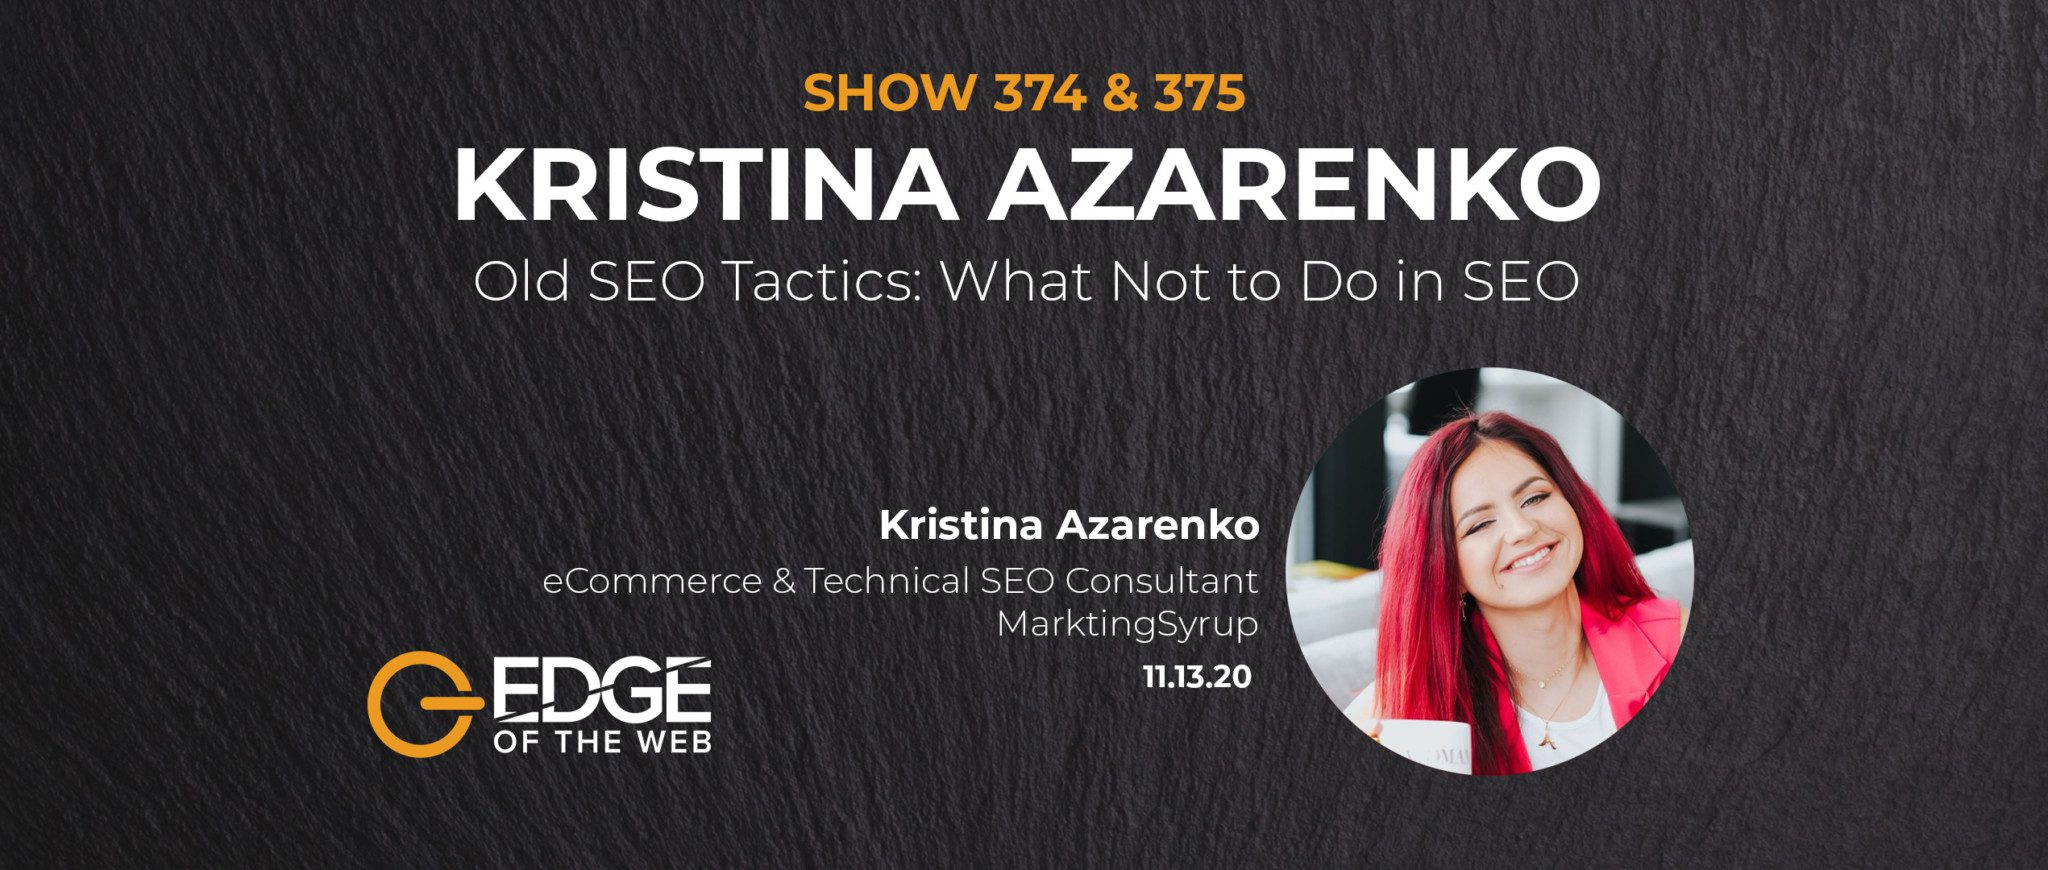 374 & 375 | Old SEO Tactics: What Not to Do in SEO with Kristina Azarenko